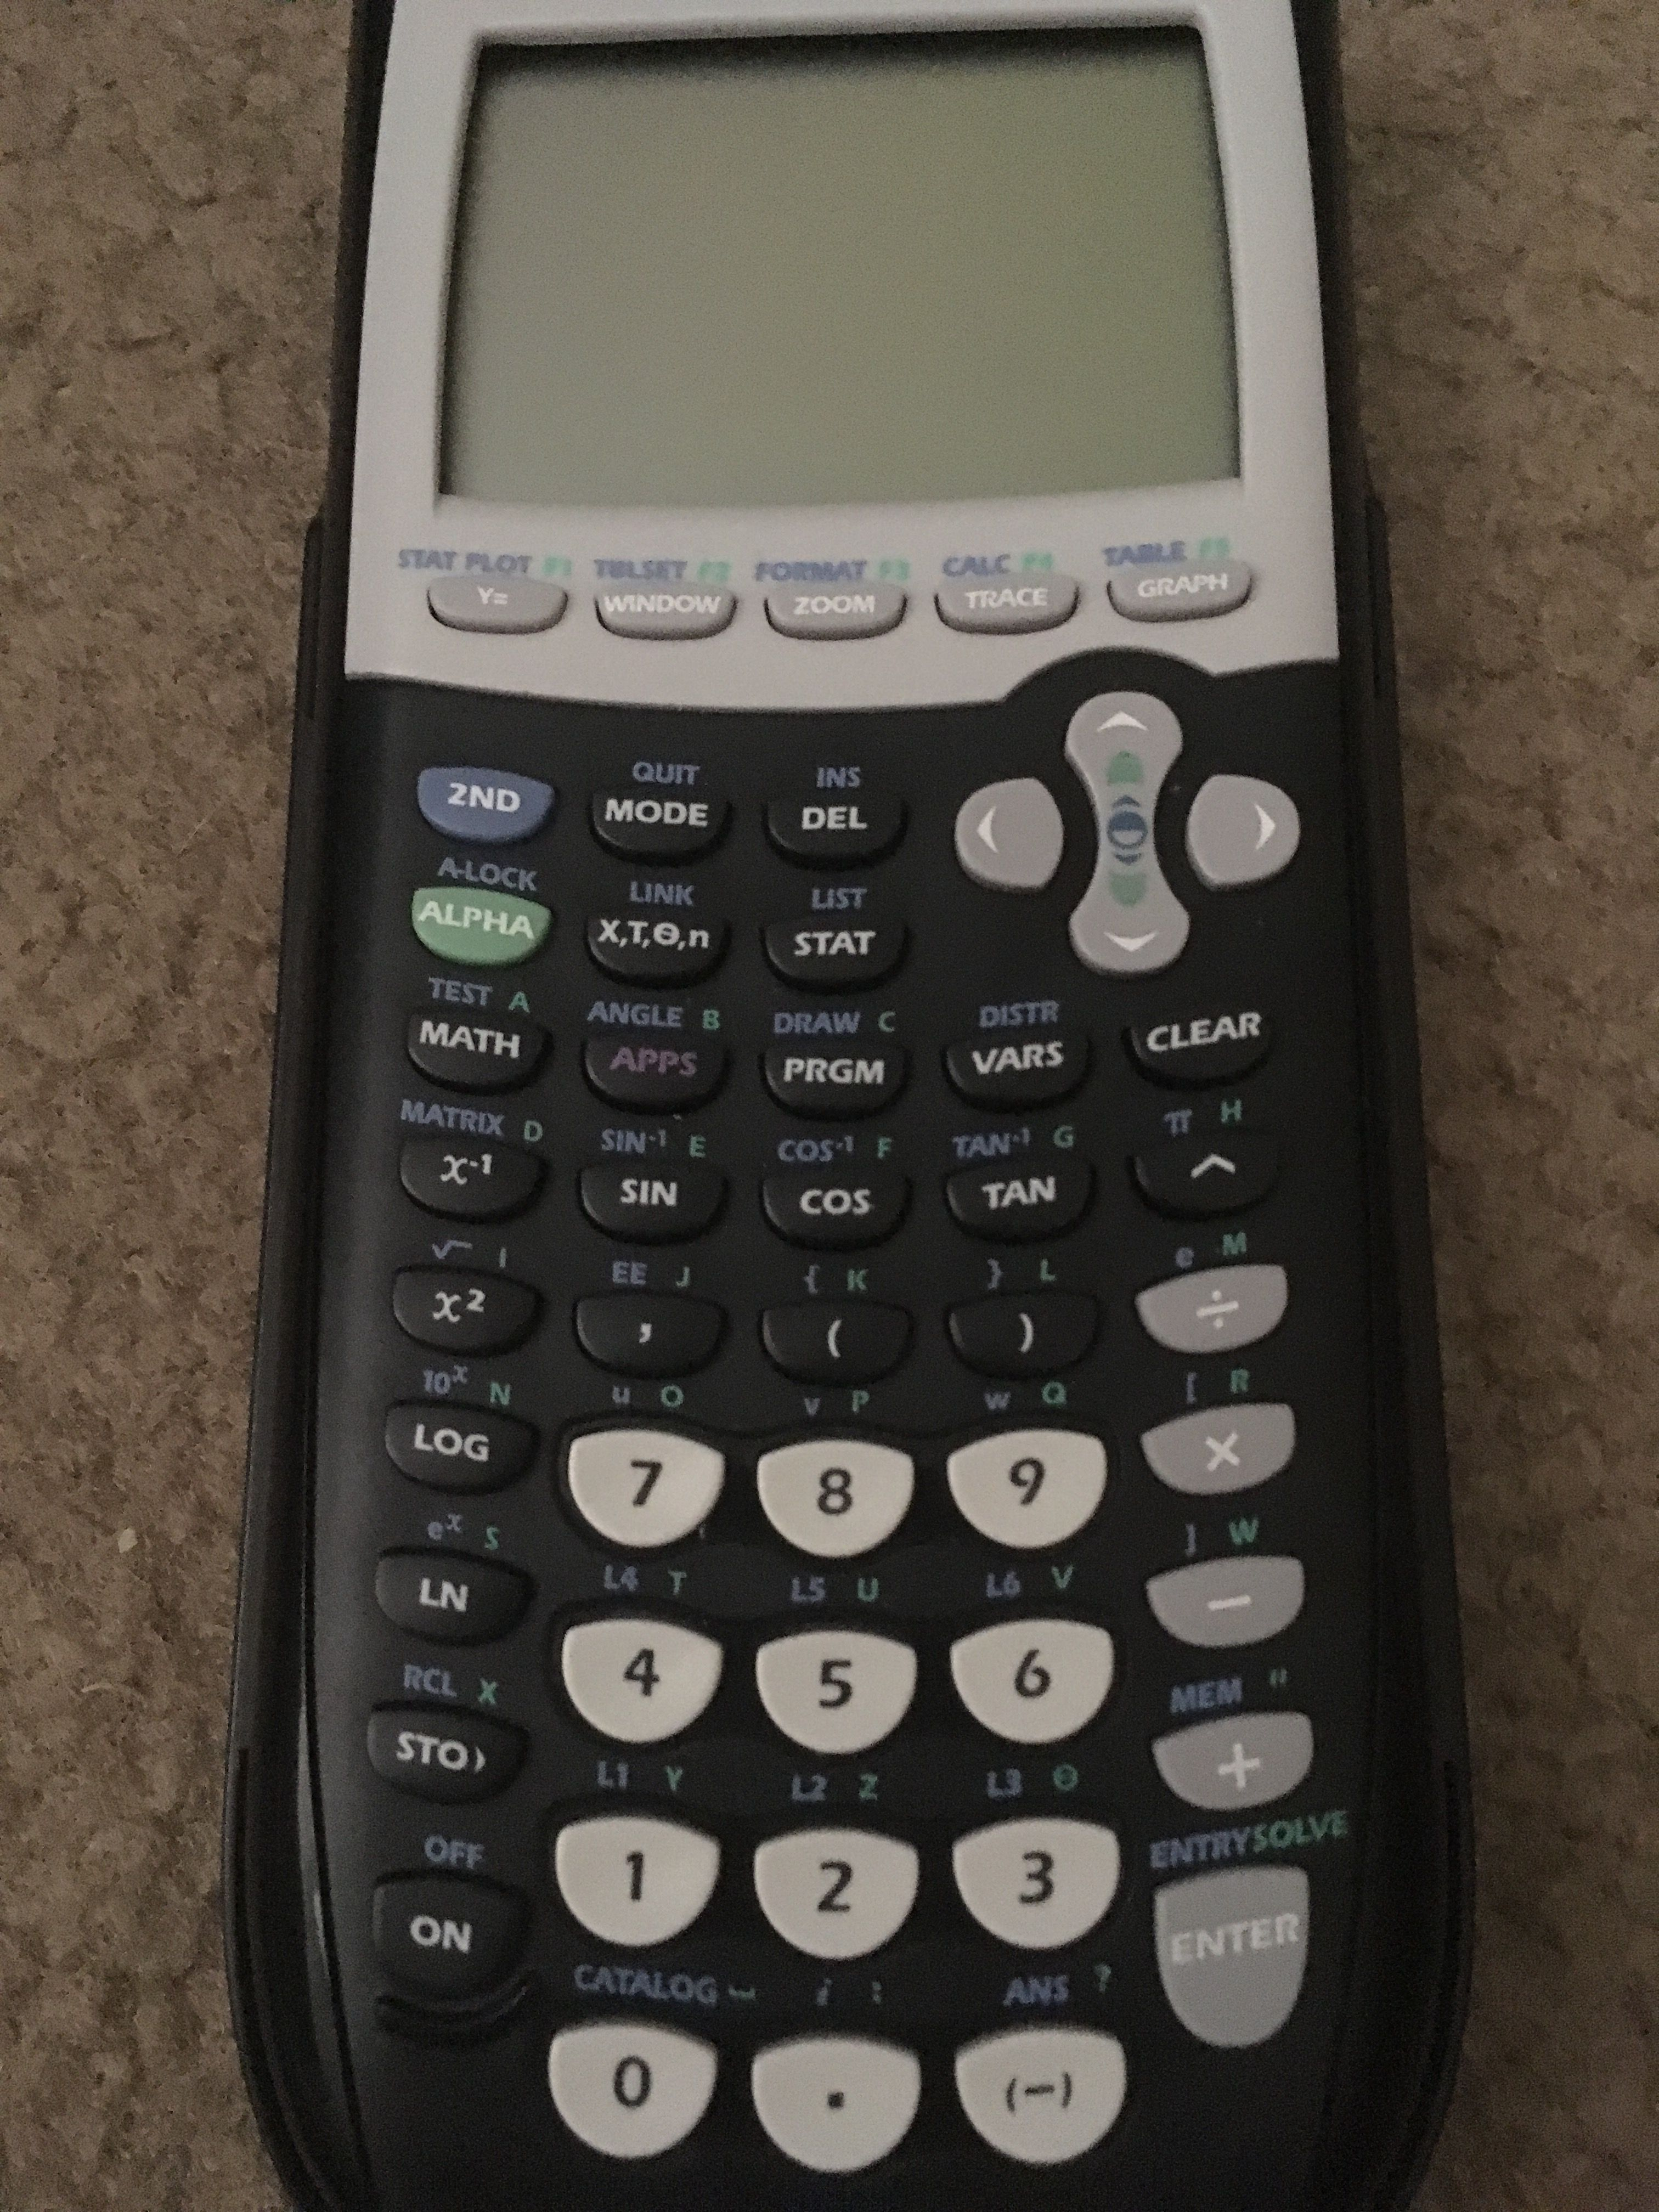 My Ti 84 Plus By Texas Instruments Useful Graphing